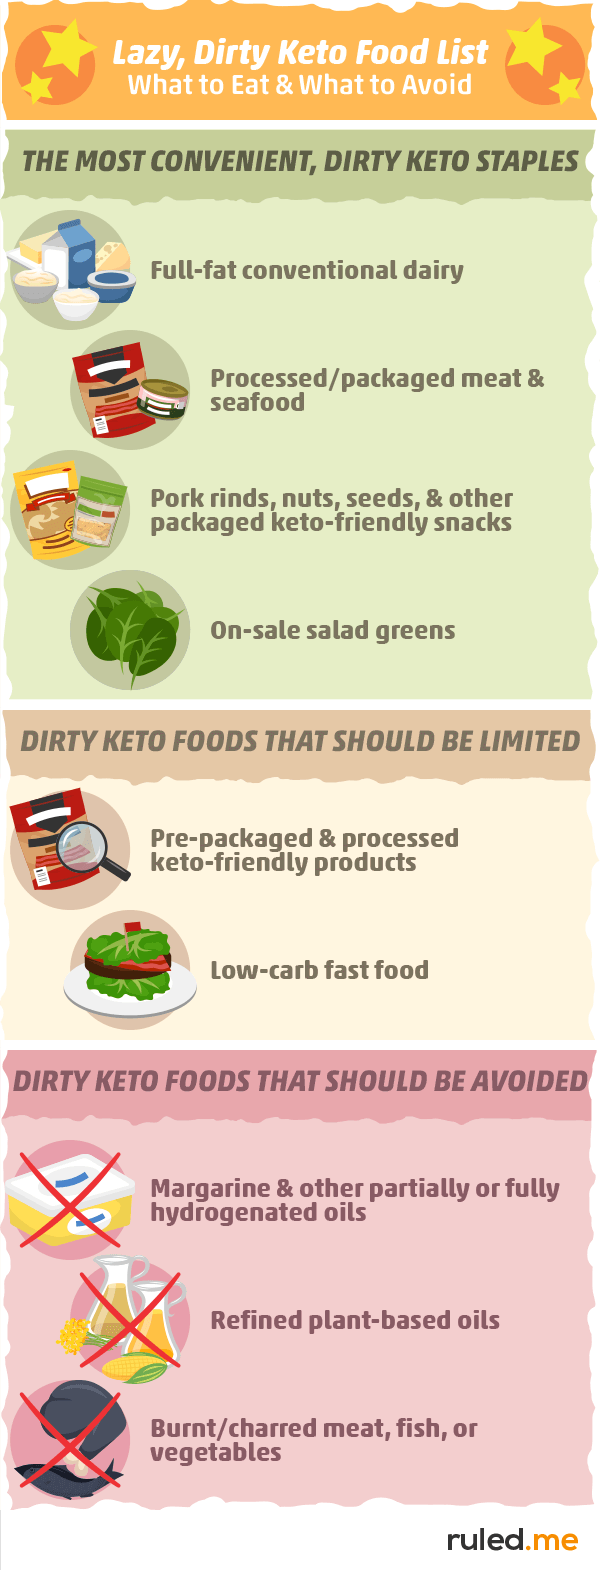 Lazy, Dirty Keto Food List: What to Eat and What to Avoid